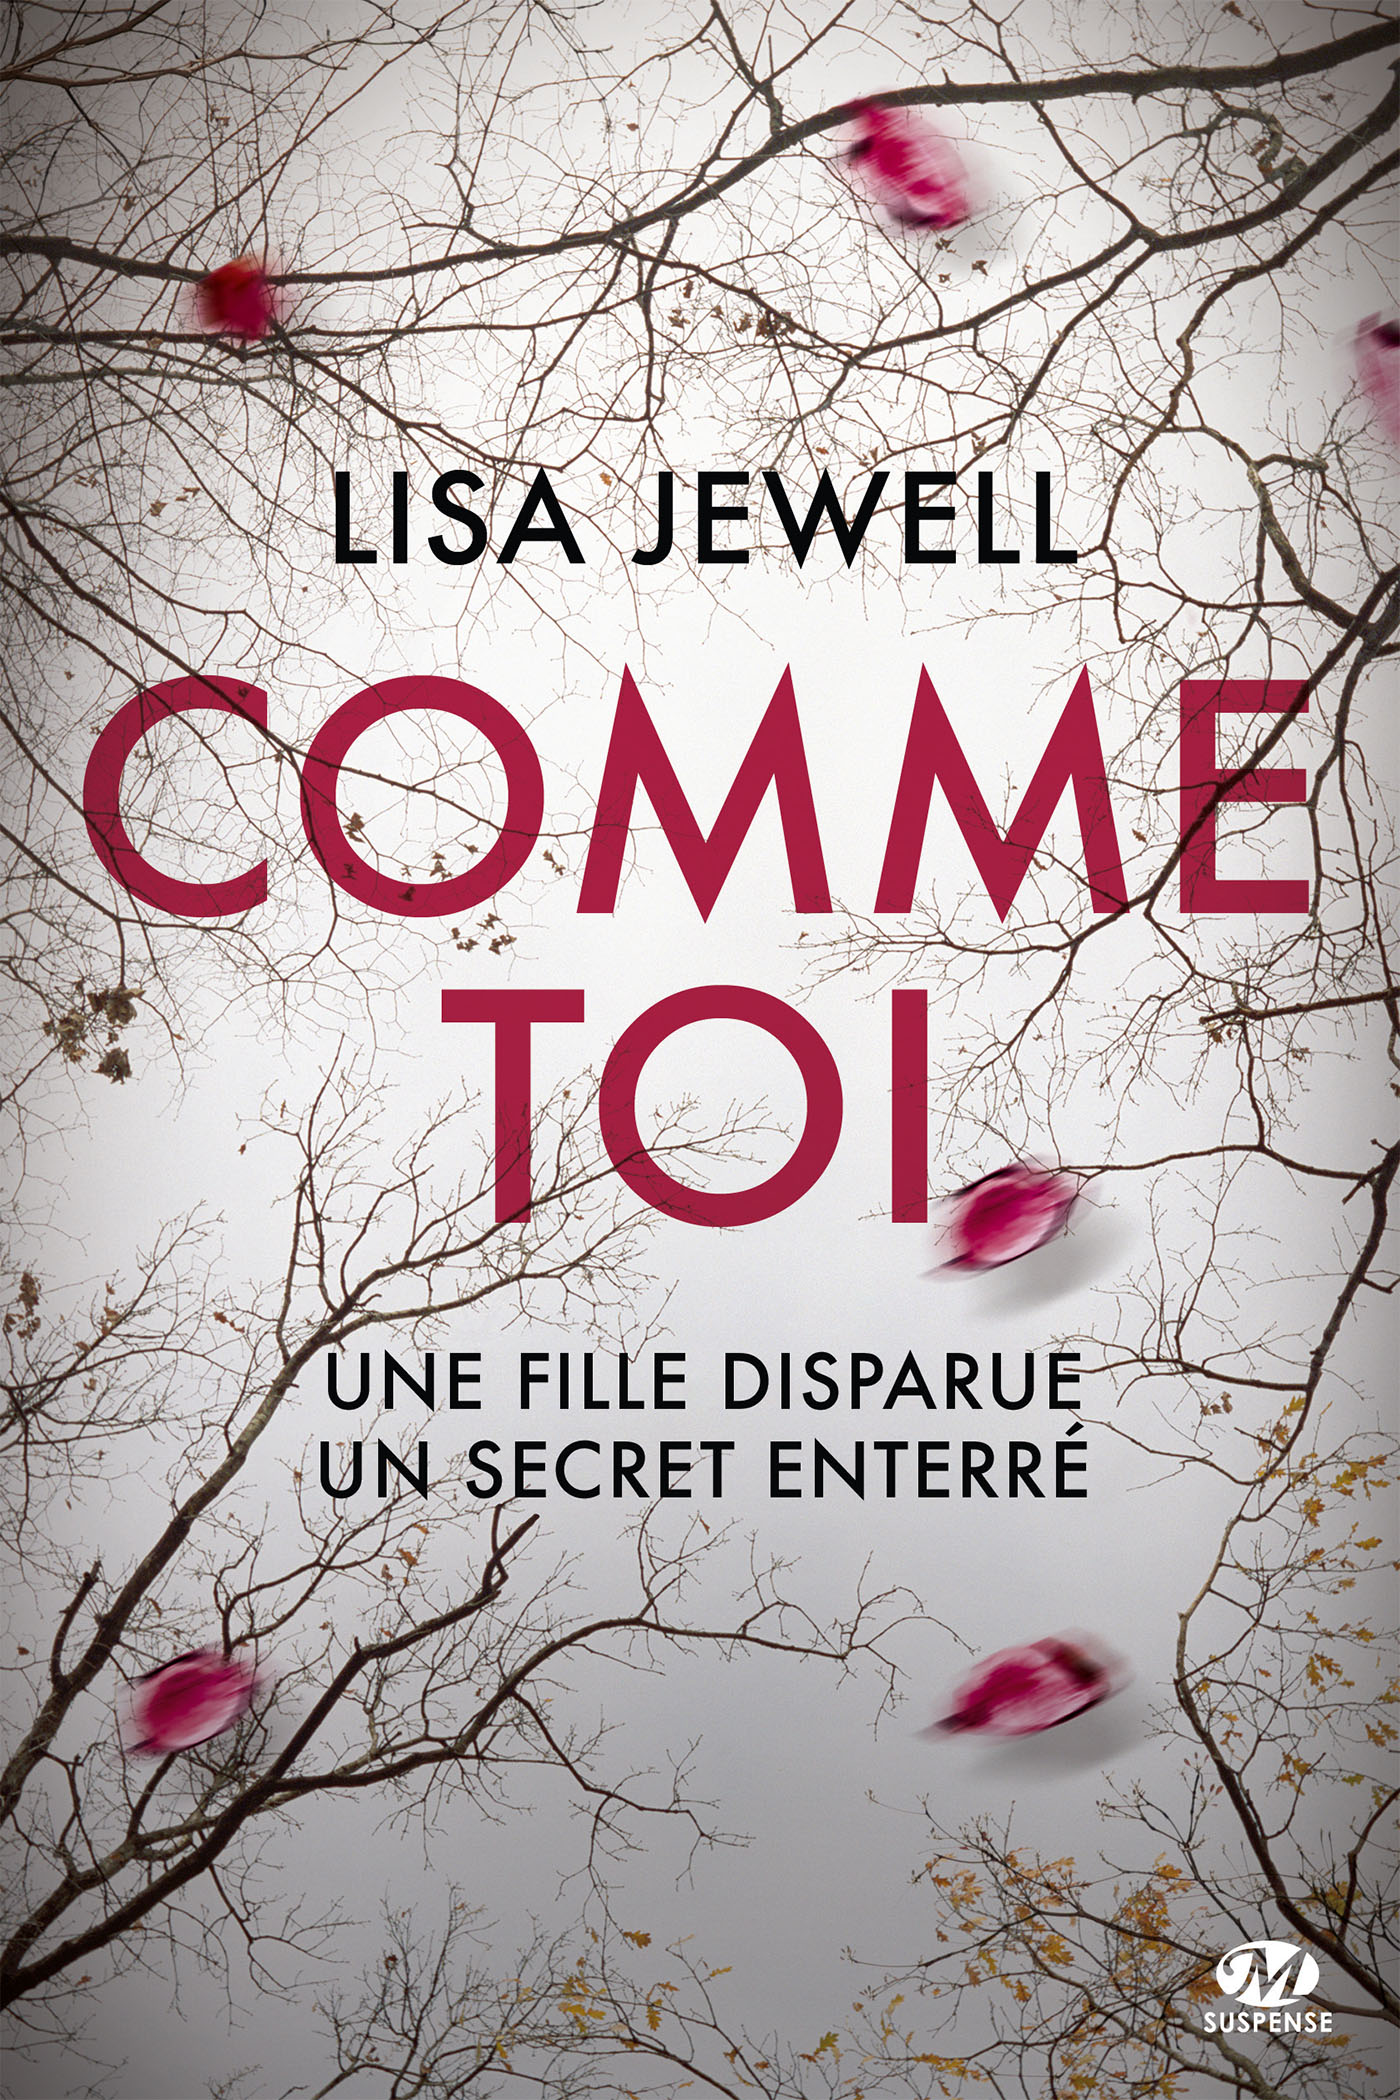 Milady Fr Lisa Jewell Comme Toi